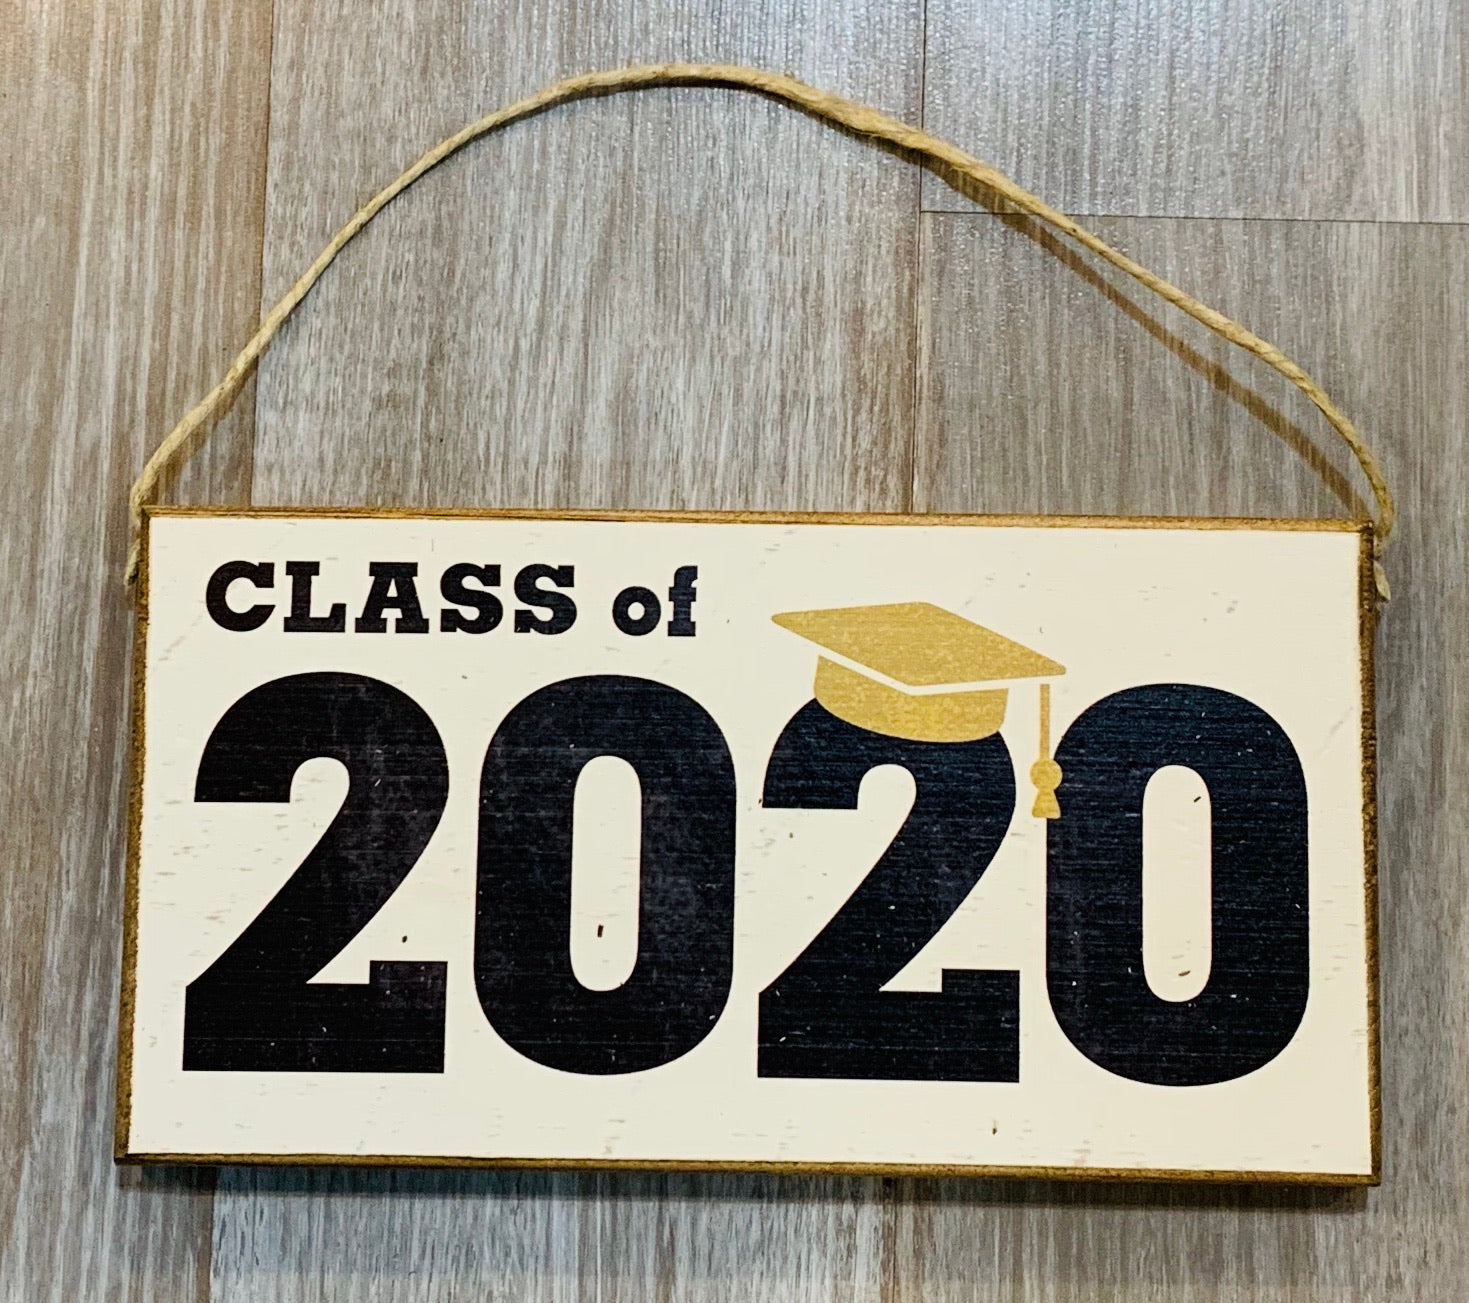 Rustic Marlin Class of 2020 hanging wood plank sign